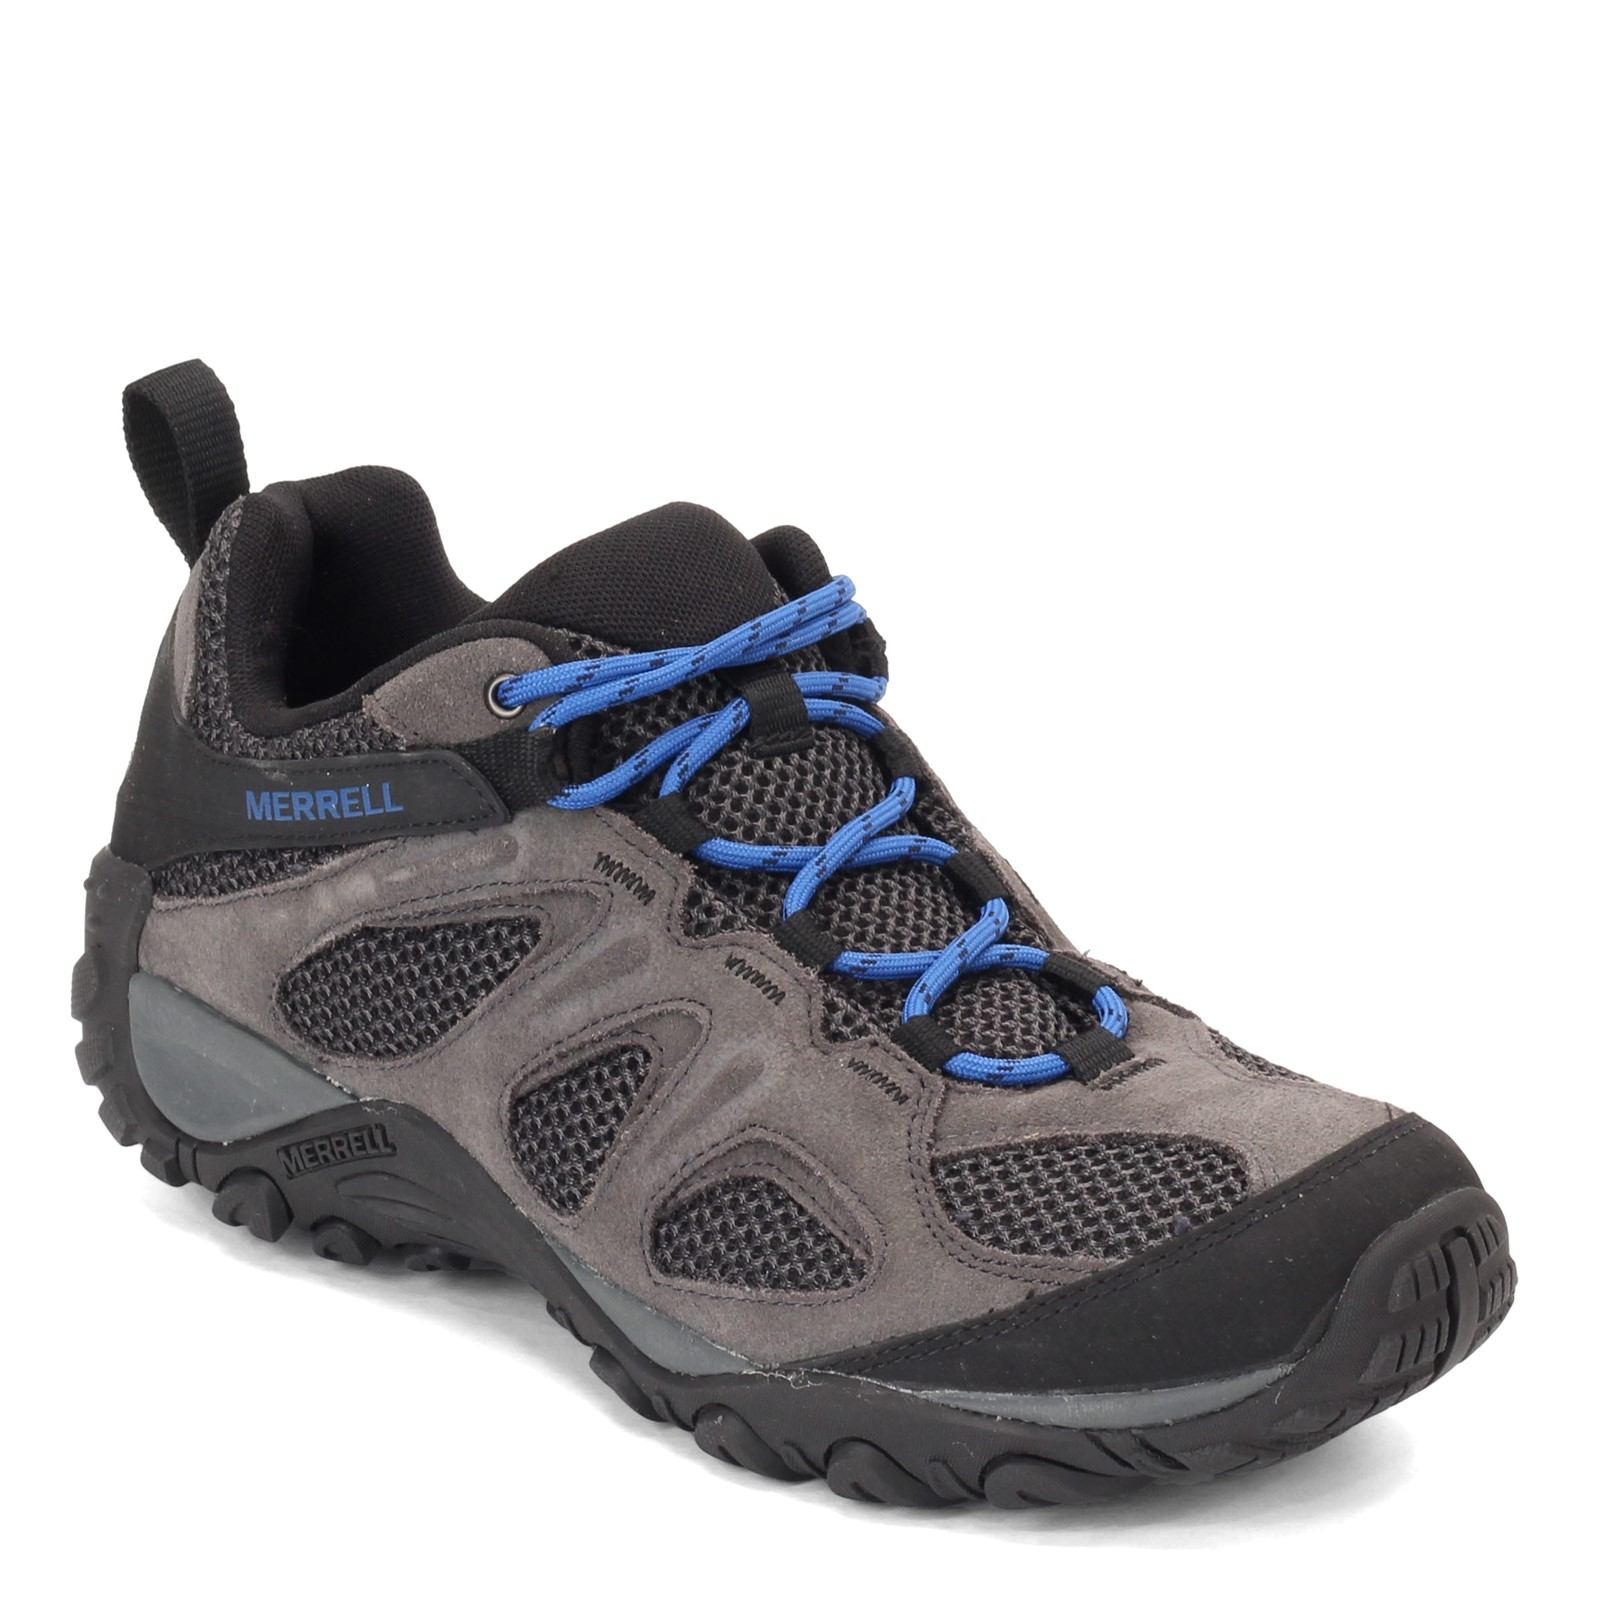 nya foton storlek 7 nya foton Men's Merrell, Yokota 2 Hiking Shoe | Peltz Shoes